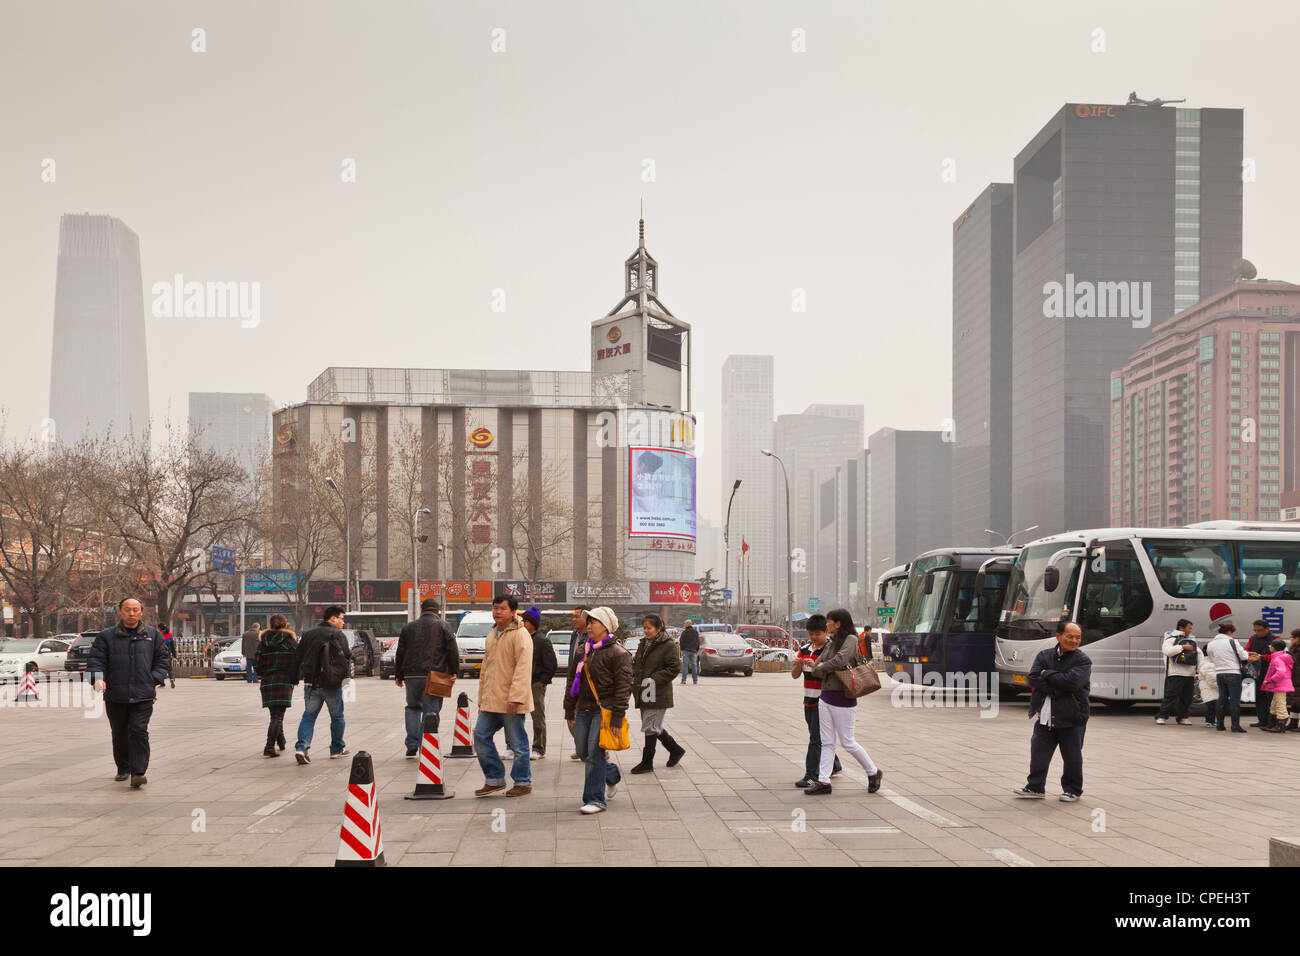 A group of tourists at the Silk Market of Beijing have just left their tour coach. - Stock Image